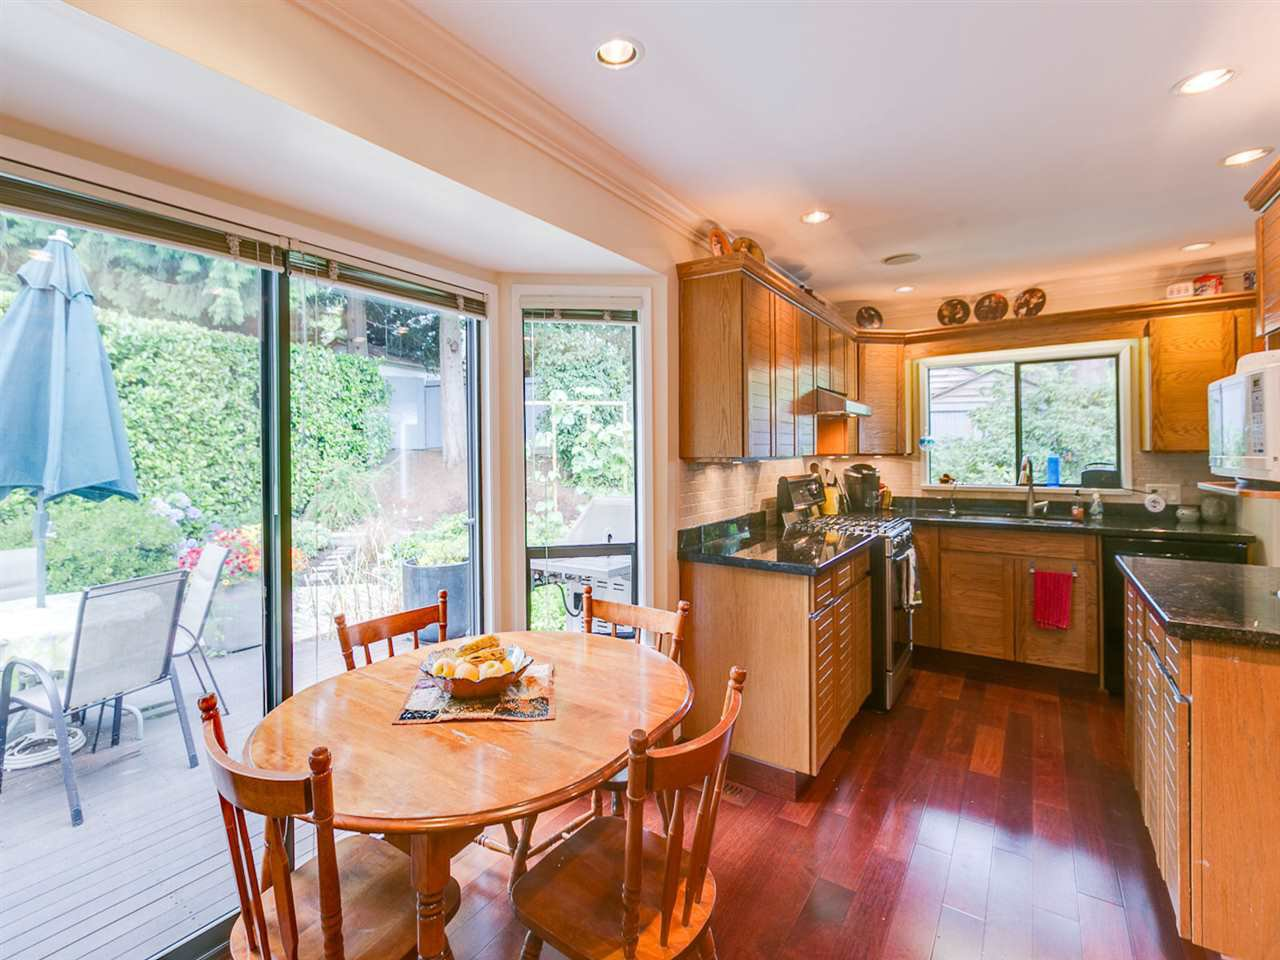 Photo 9: Photos: 1959 ALDERLYNN Drive in North Vancouver: Westlynn House for sale : MLS®# R2094199